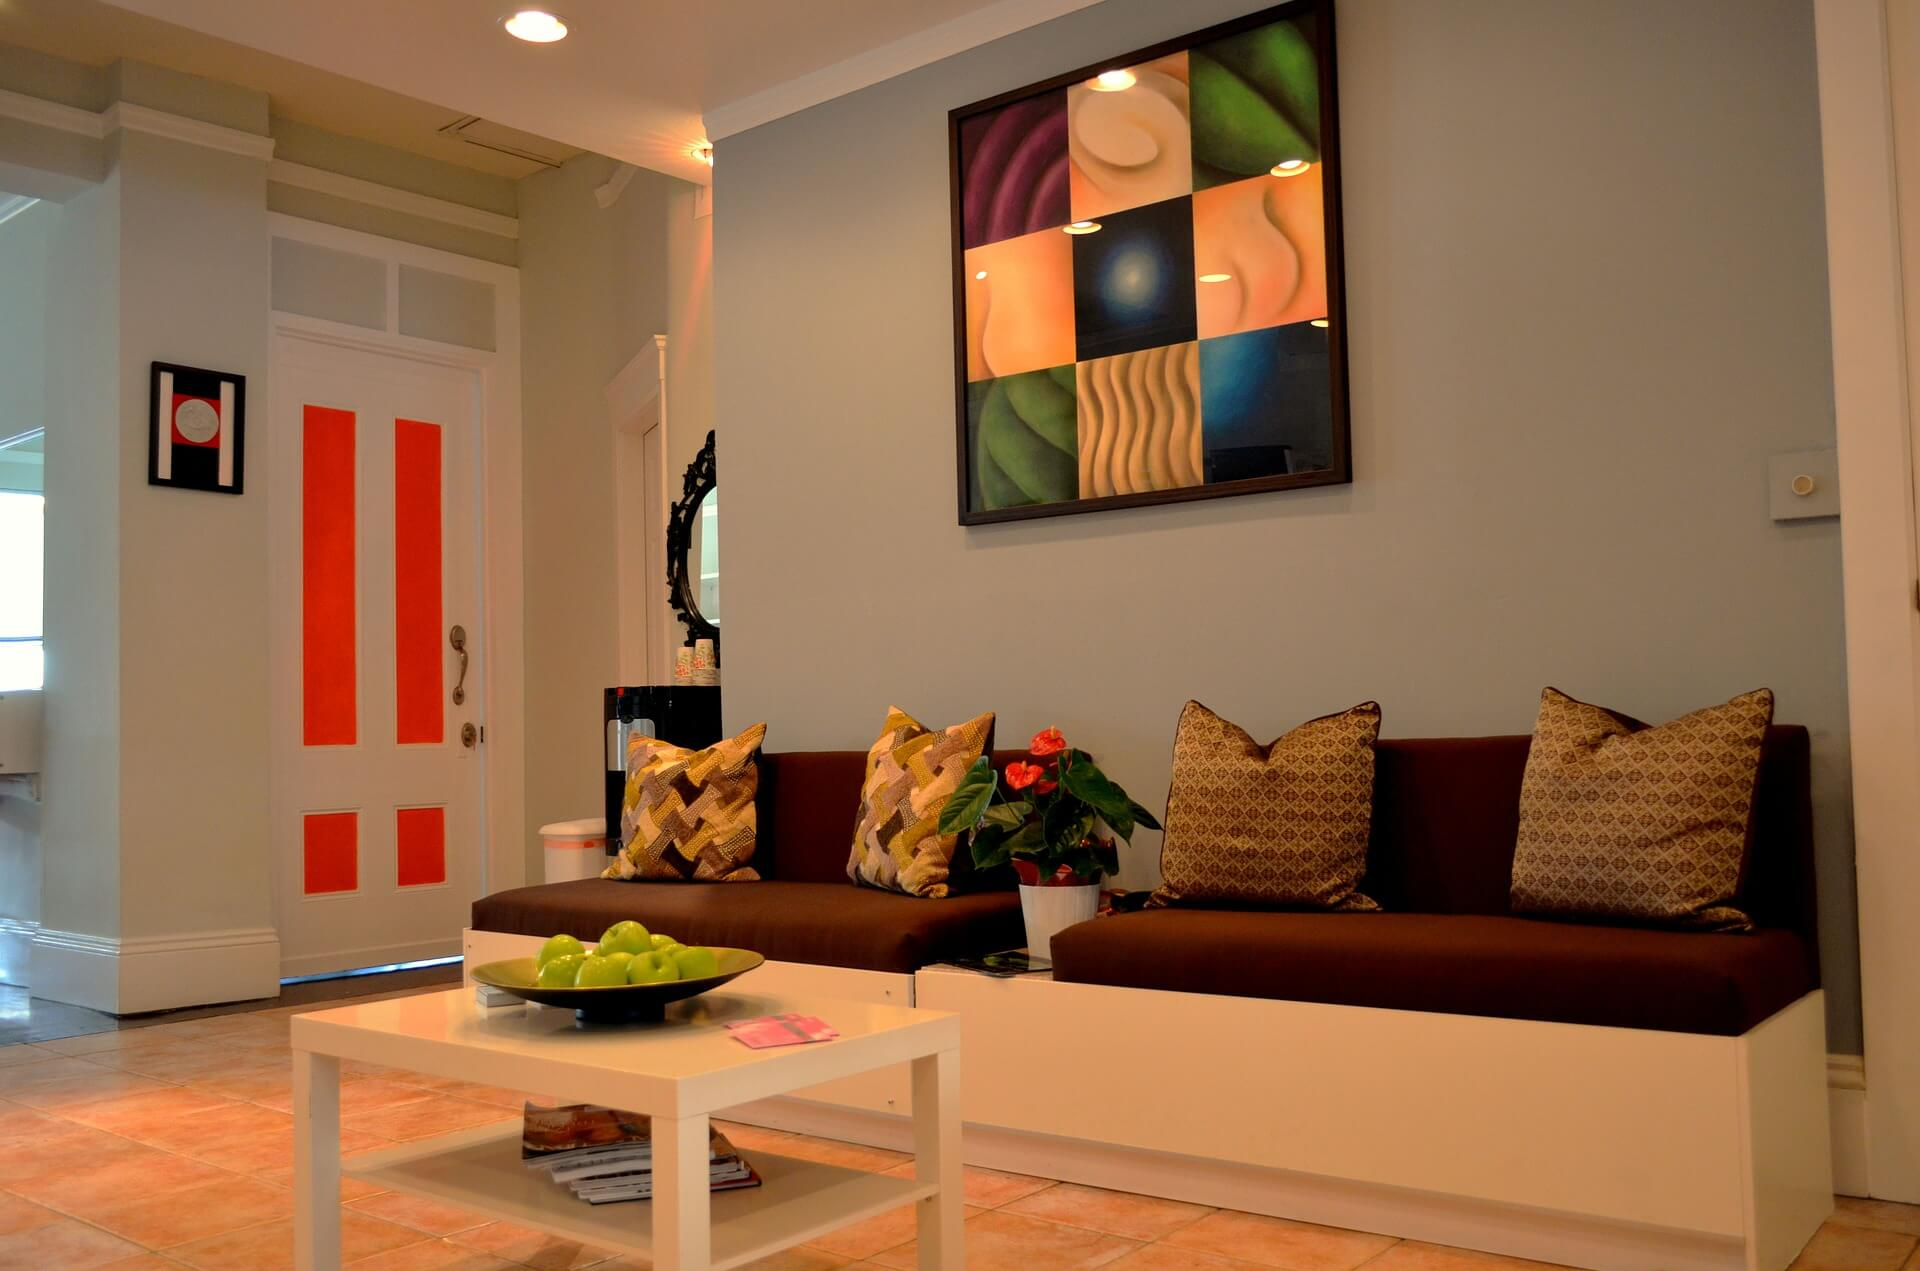 3 tips for matching interior design elements together